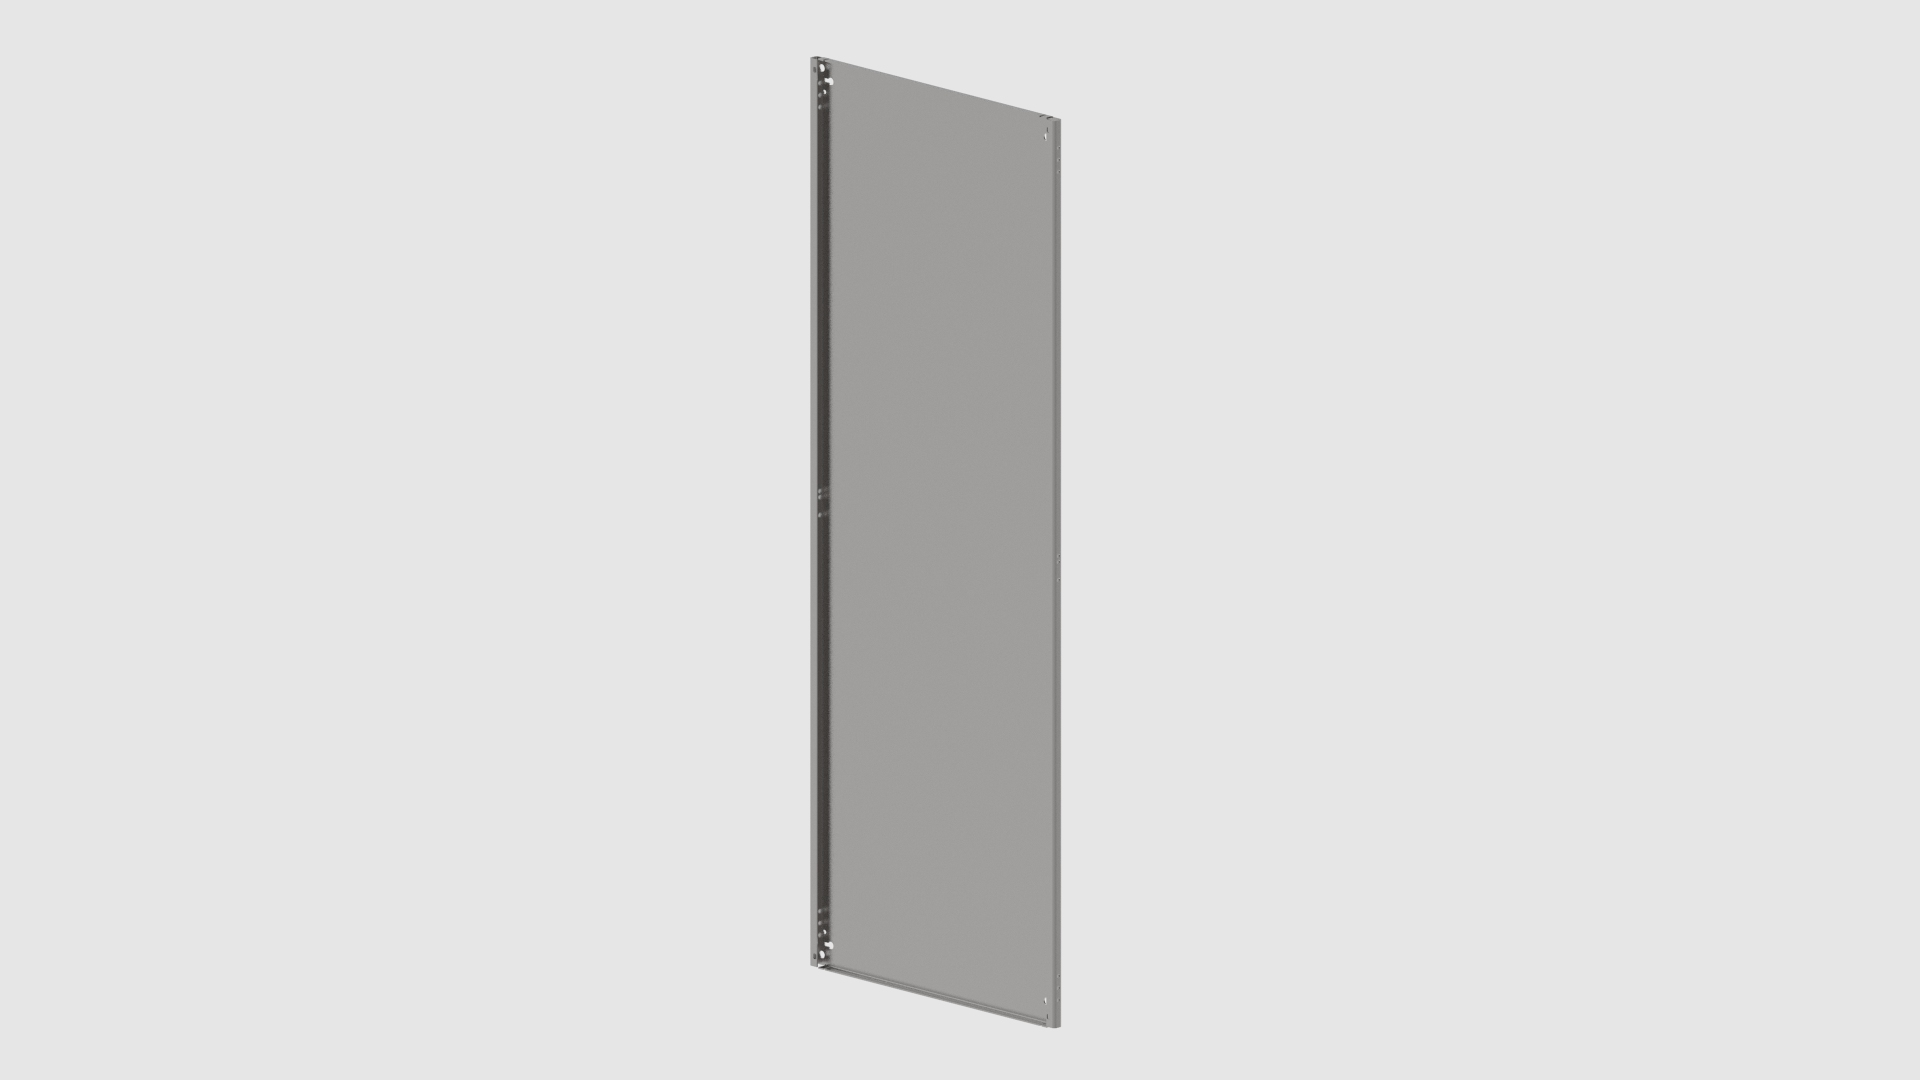 WEMO Picture of an Electrical Enclosure Mountingplate product.jpg